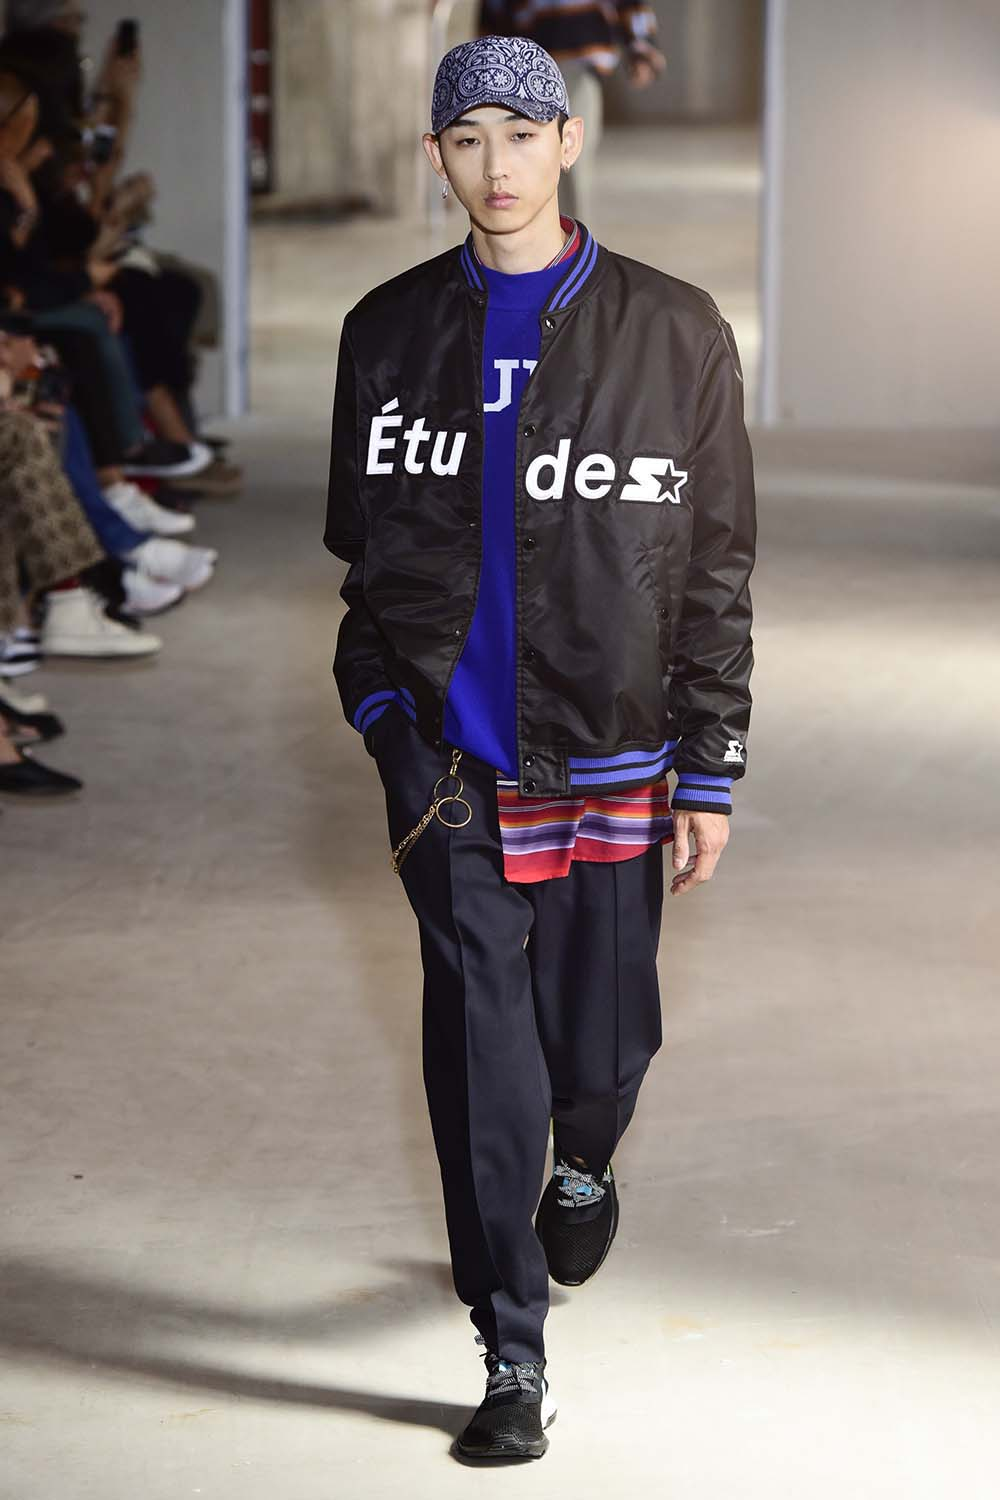 Etudes Paris Fashion Week Men's SS19 - Sagaboi - Look 23